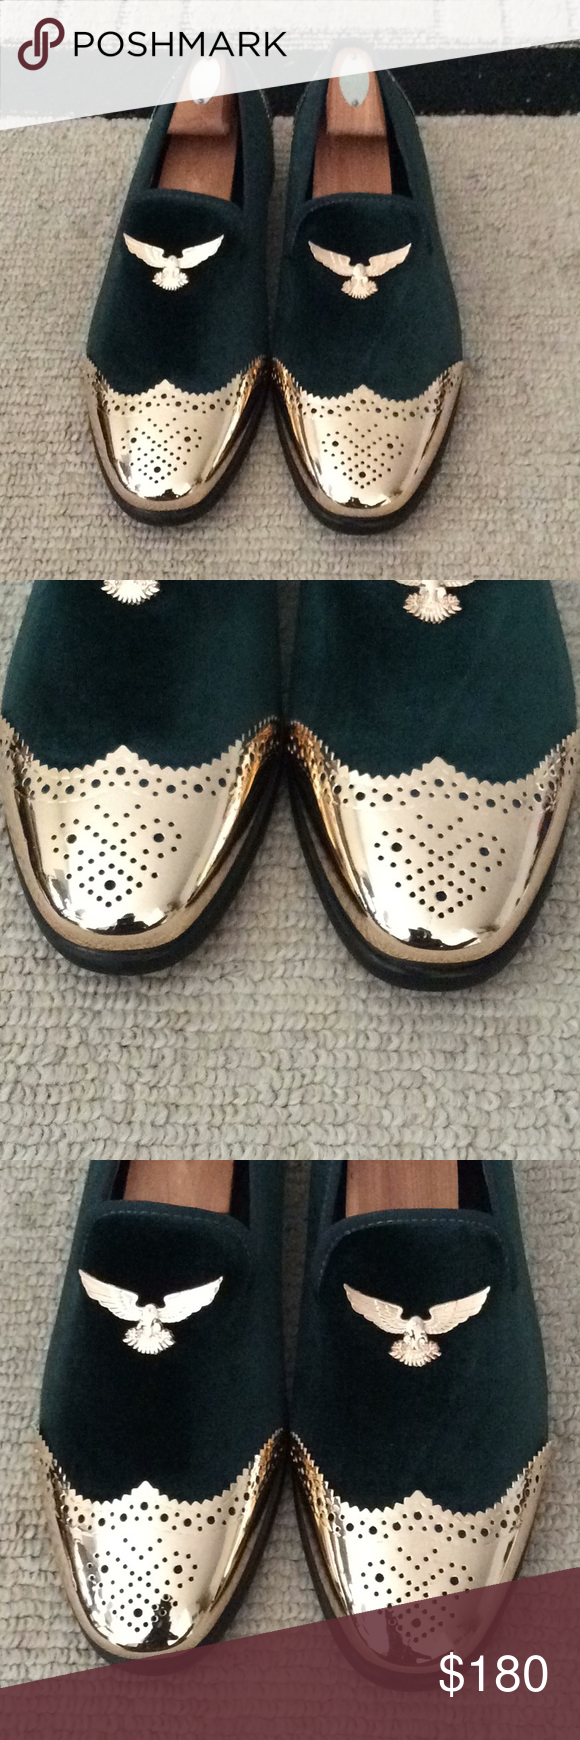 1ece73bdb3f Men Green Velvet Metal Loafers Shoes Green Velvet Loafers Follow my  Business page  Nanaloafers on